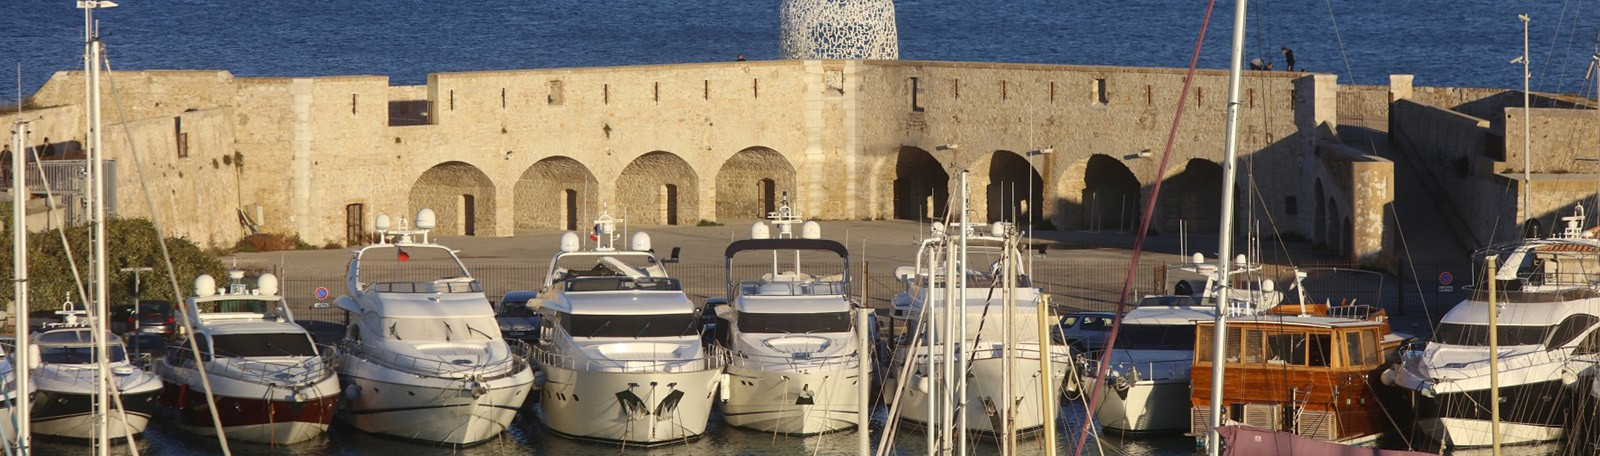 Parking La Poste - Parkeren in Antibes | Q-Park